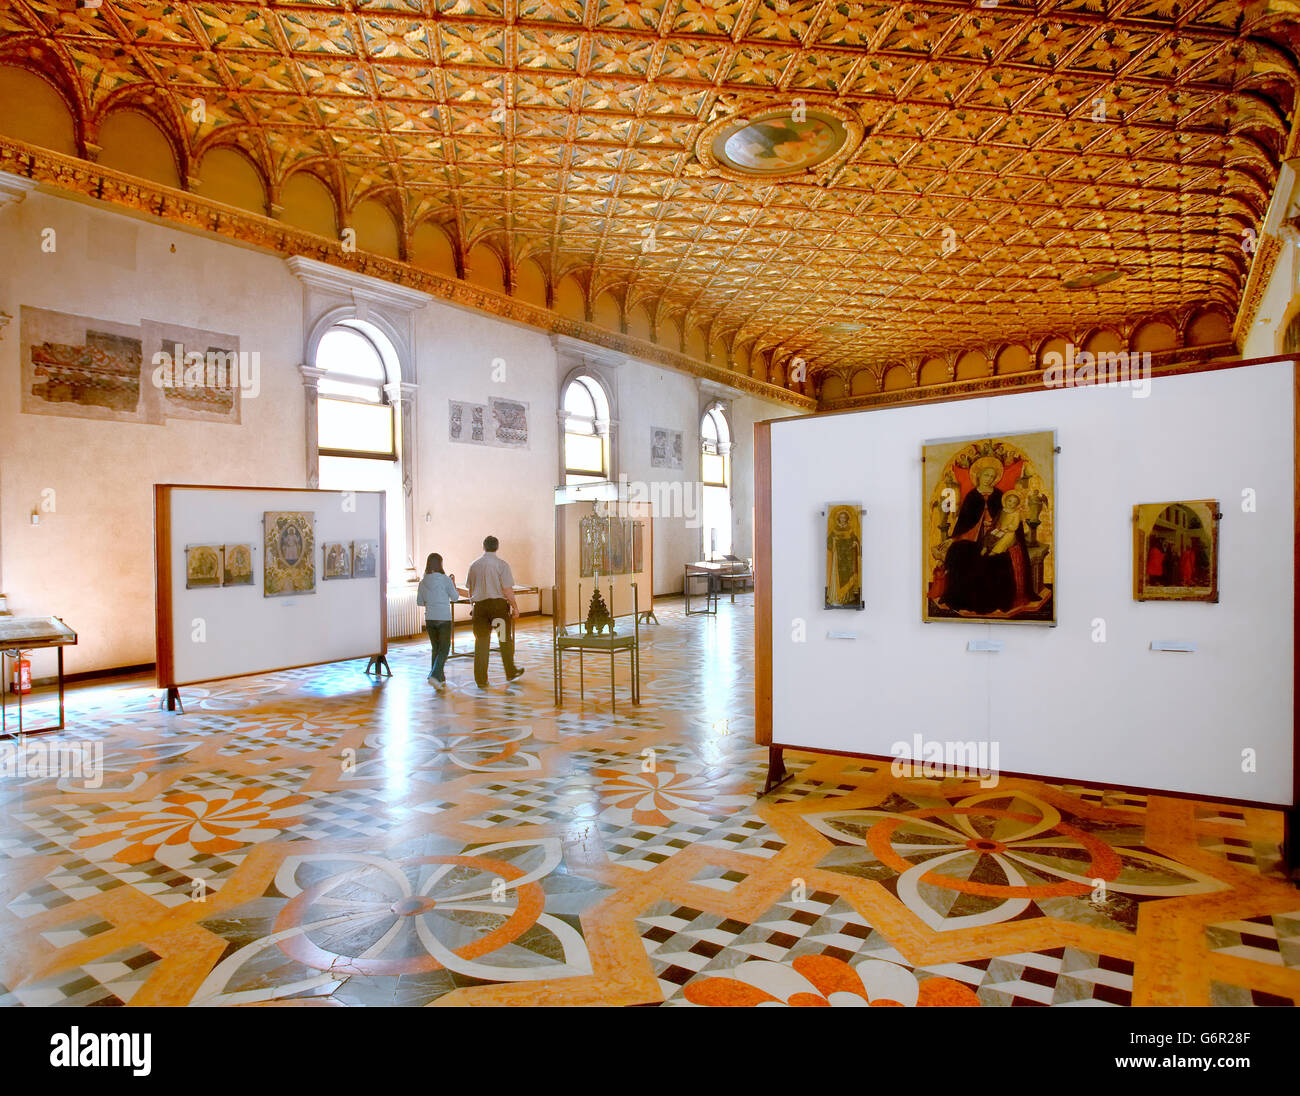 Accademia Gallery in Venice - Stock Image